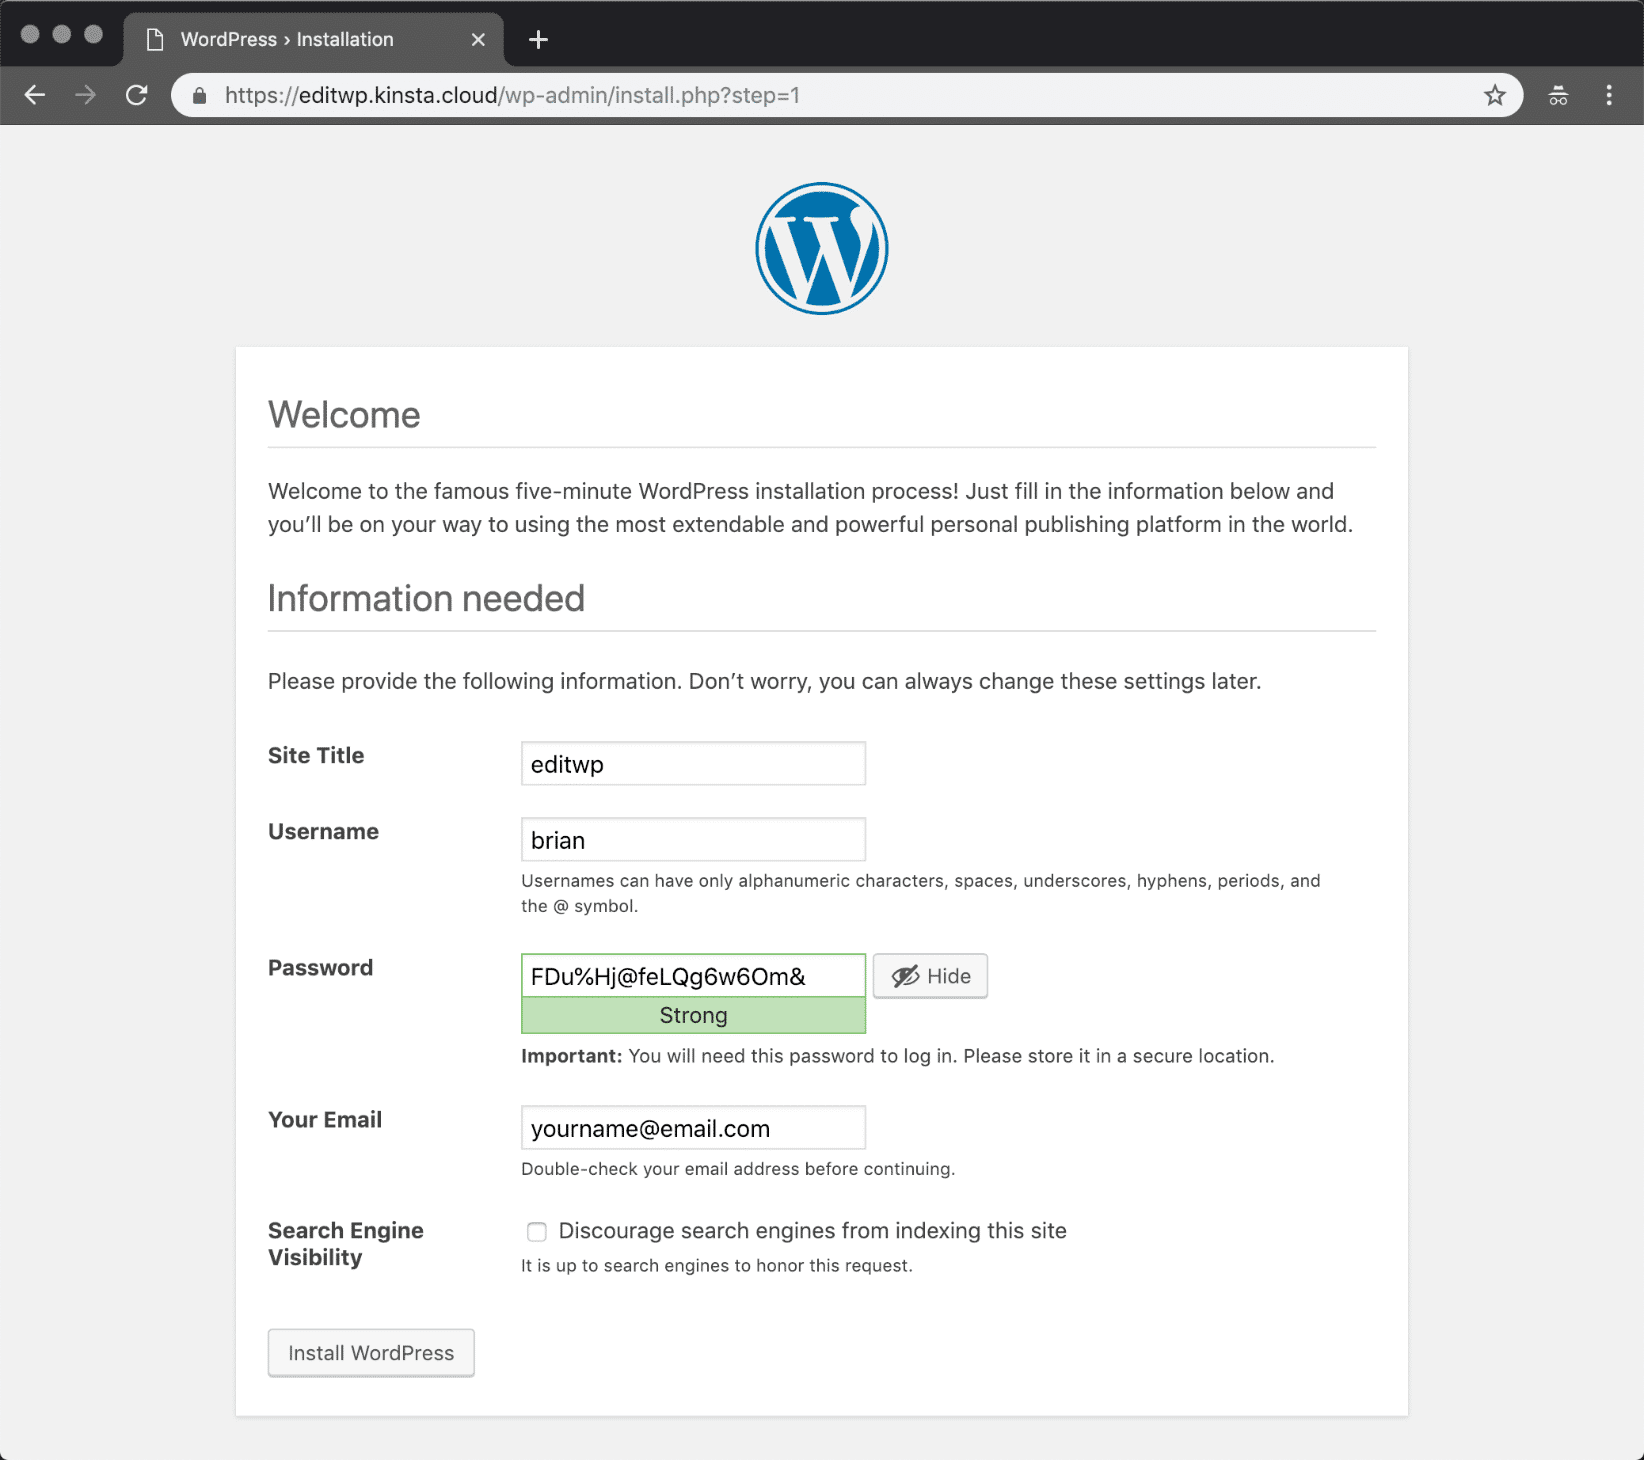 Manually install WordPress - Information needed